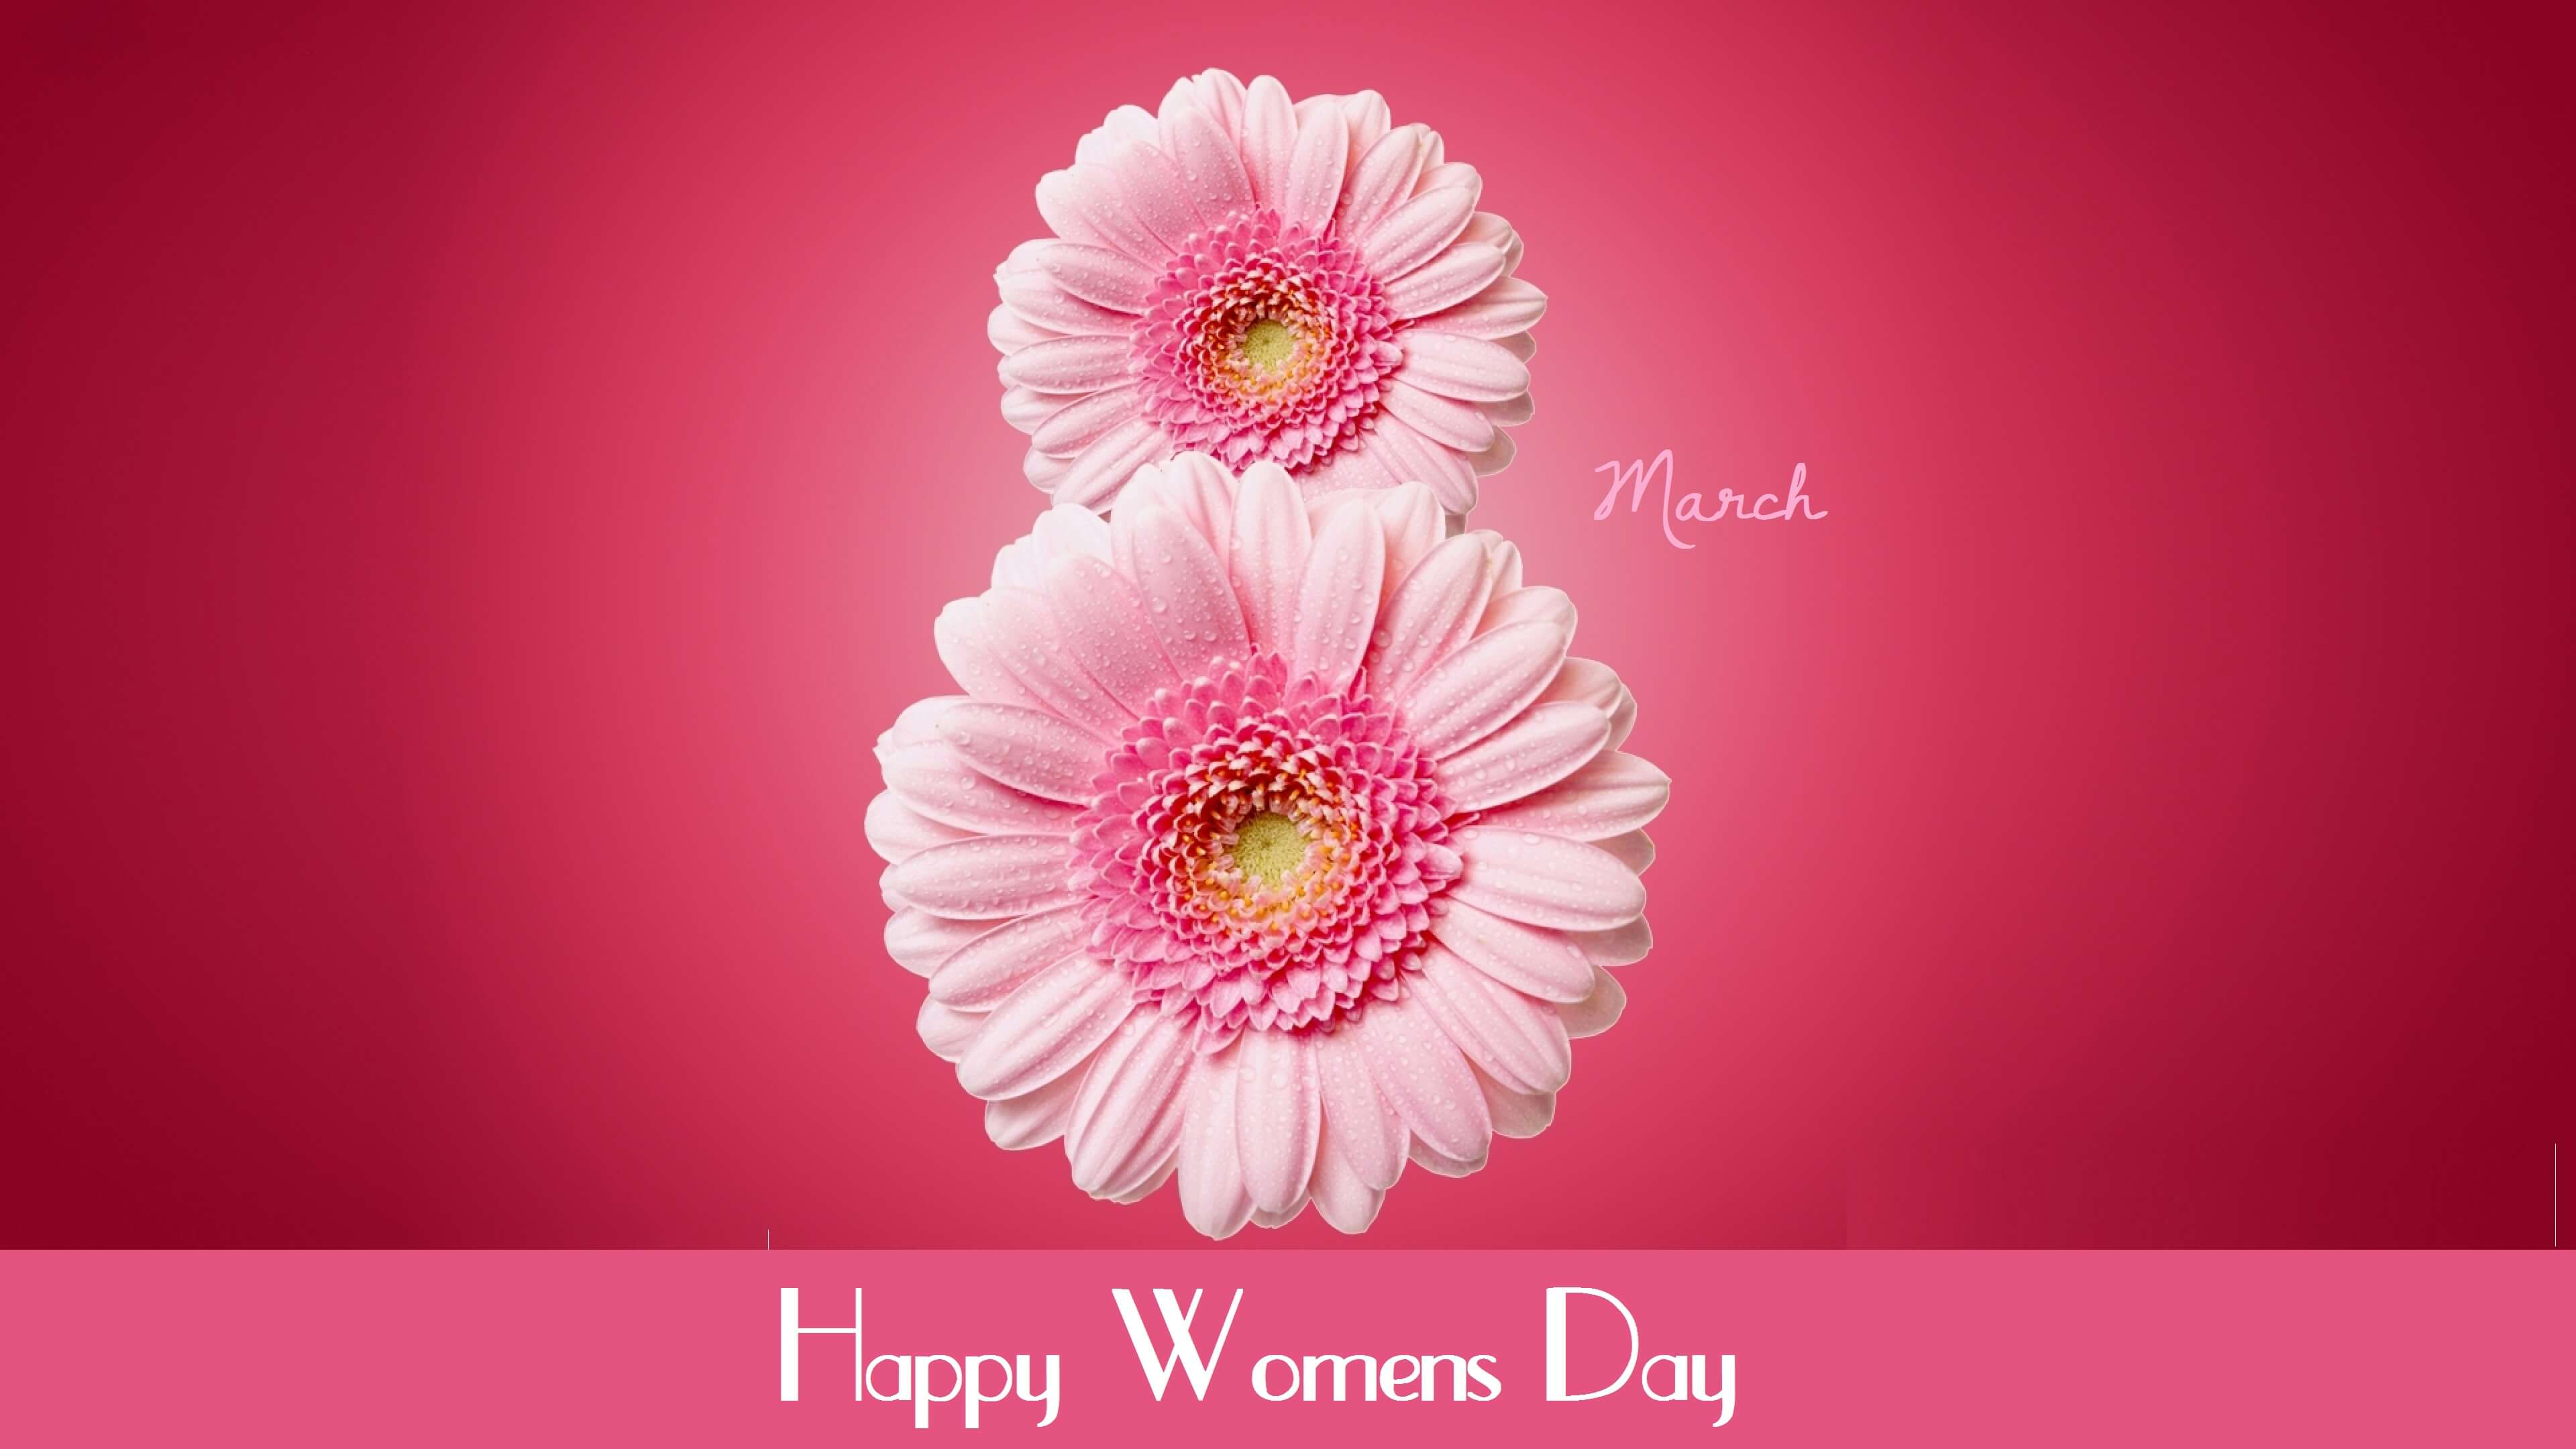 happy womens day march 8 image